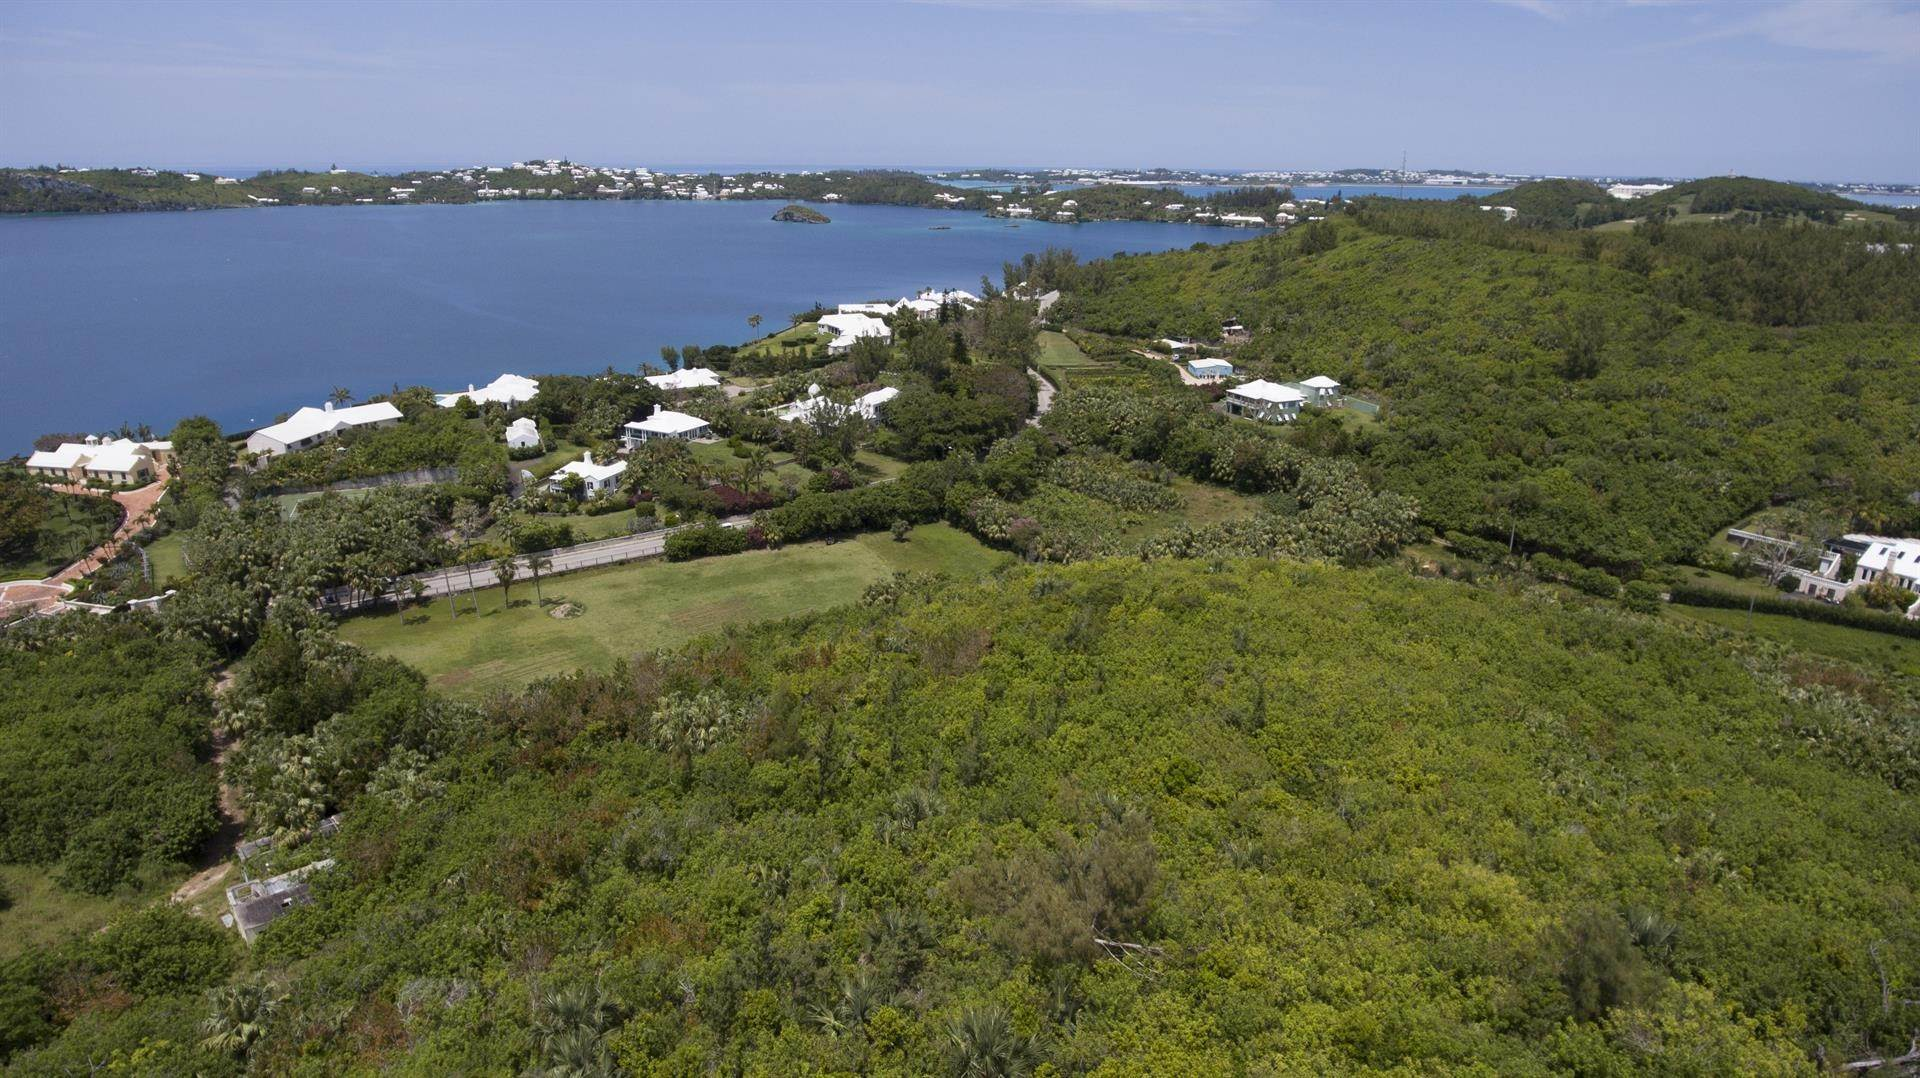 Land / Lots for Sale at North Estate: Arrowroot Lane Building Lot North Estate: Arrowroot Lane Building Lot, Arrowroot Lane,Bermuda – Sinclair Realty